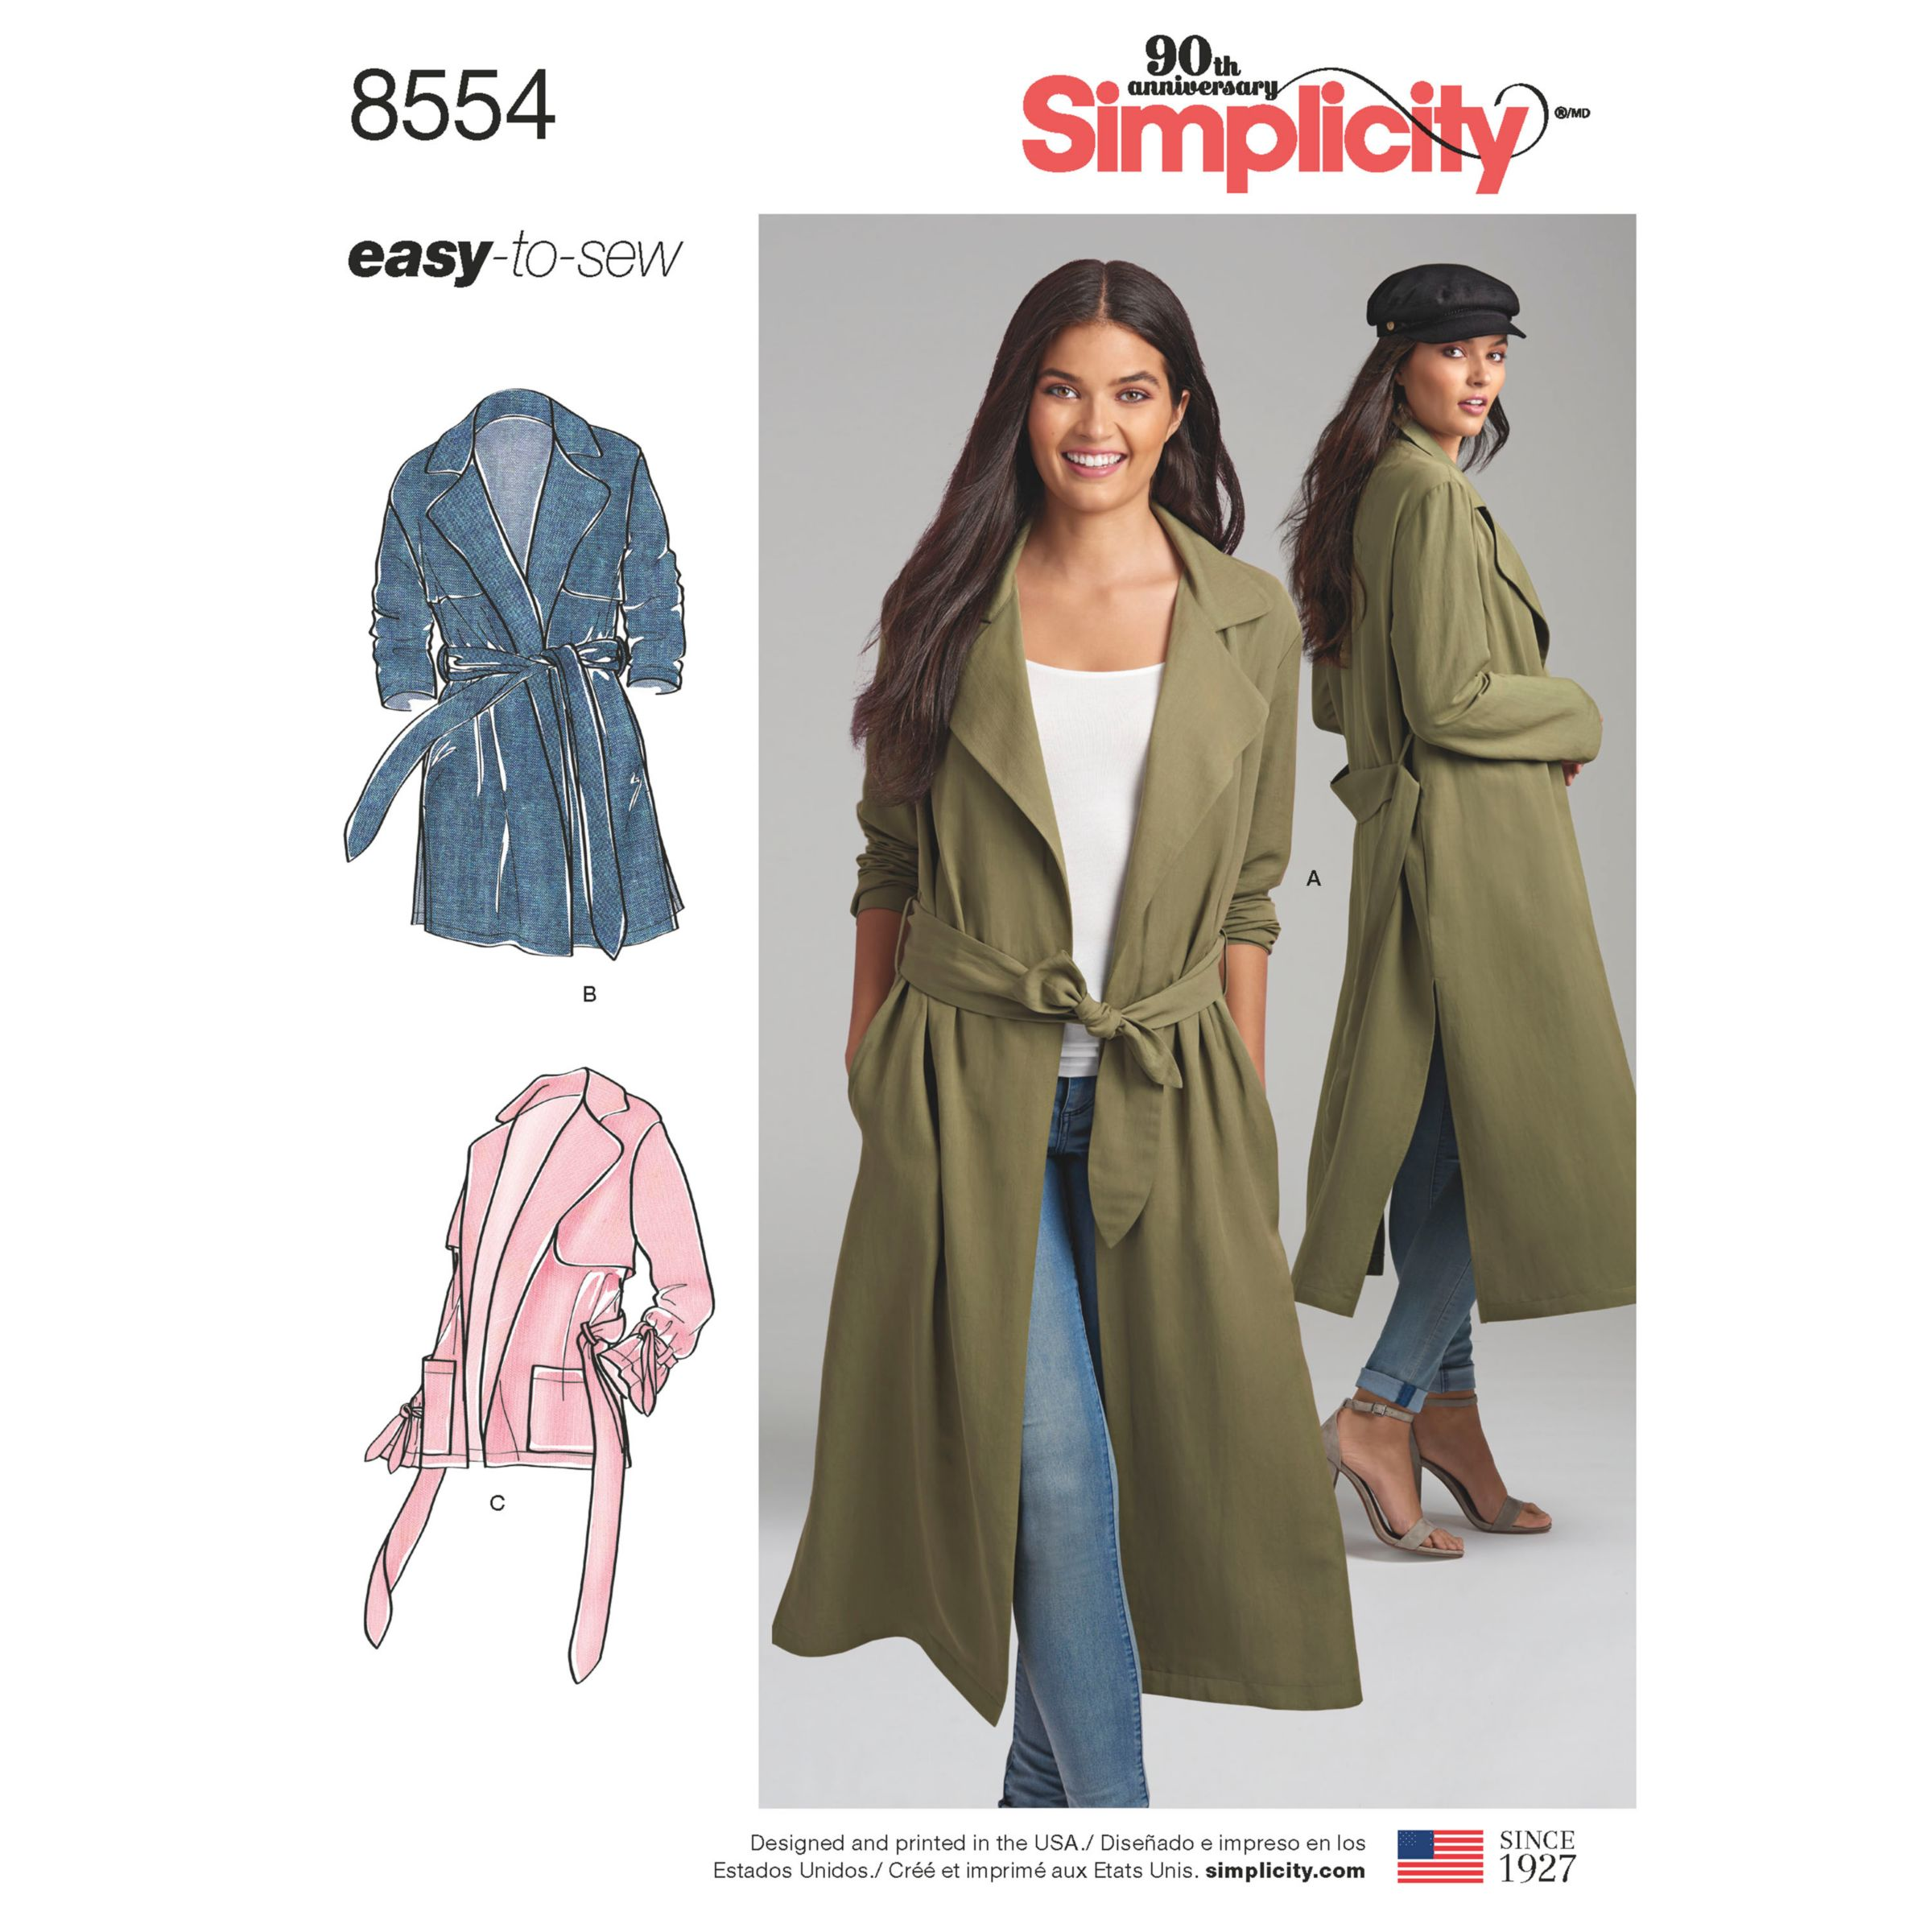 Simplicity Women S Trench Coat And Jacket Sewing Pattern 8554 At John Lewis Partners